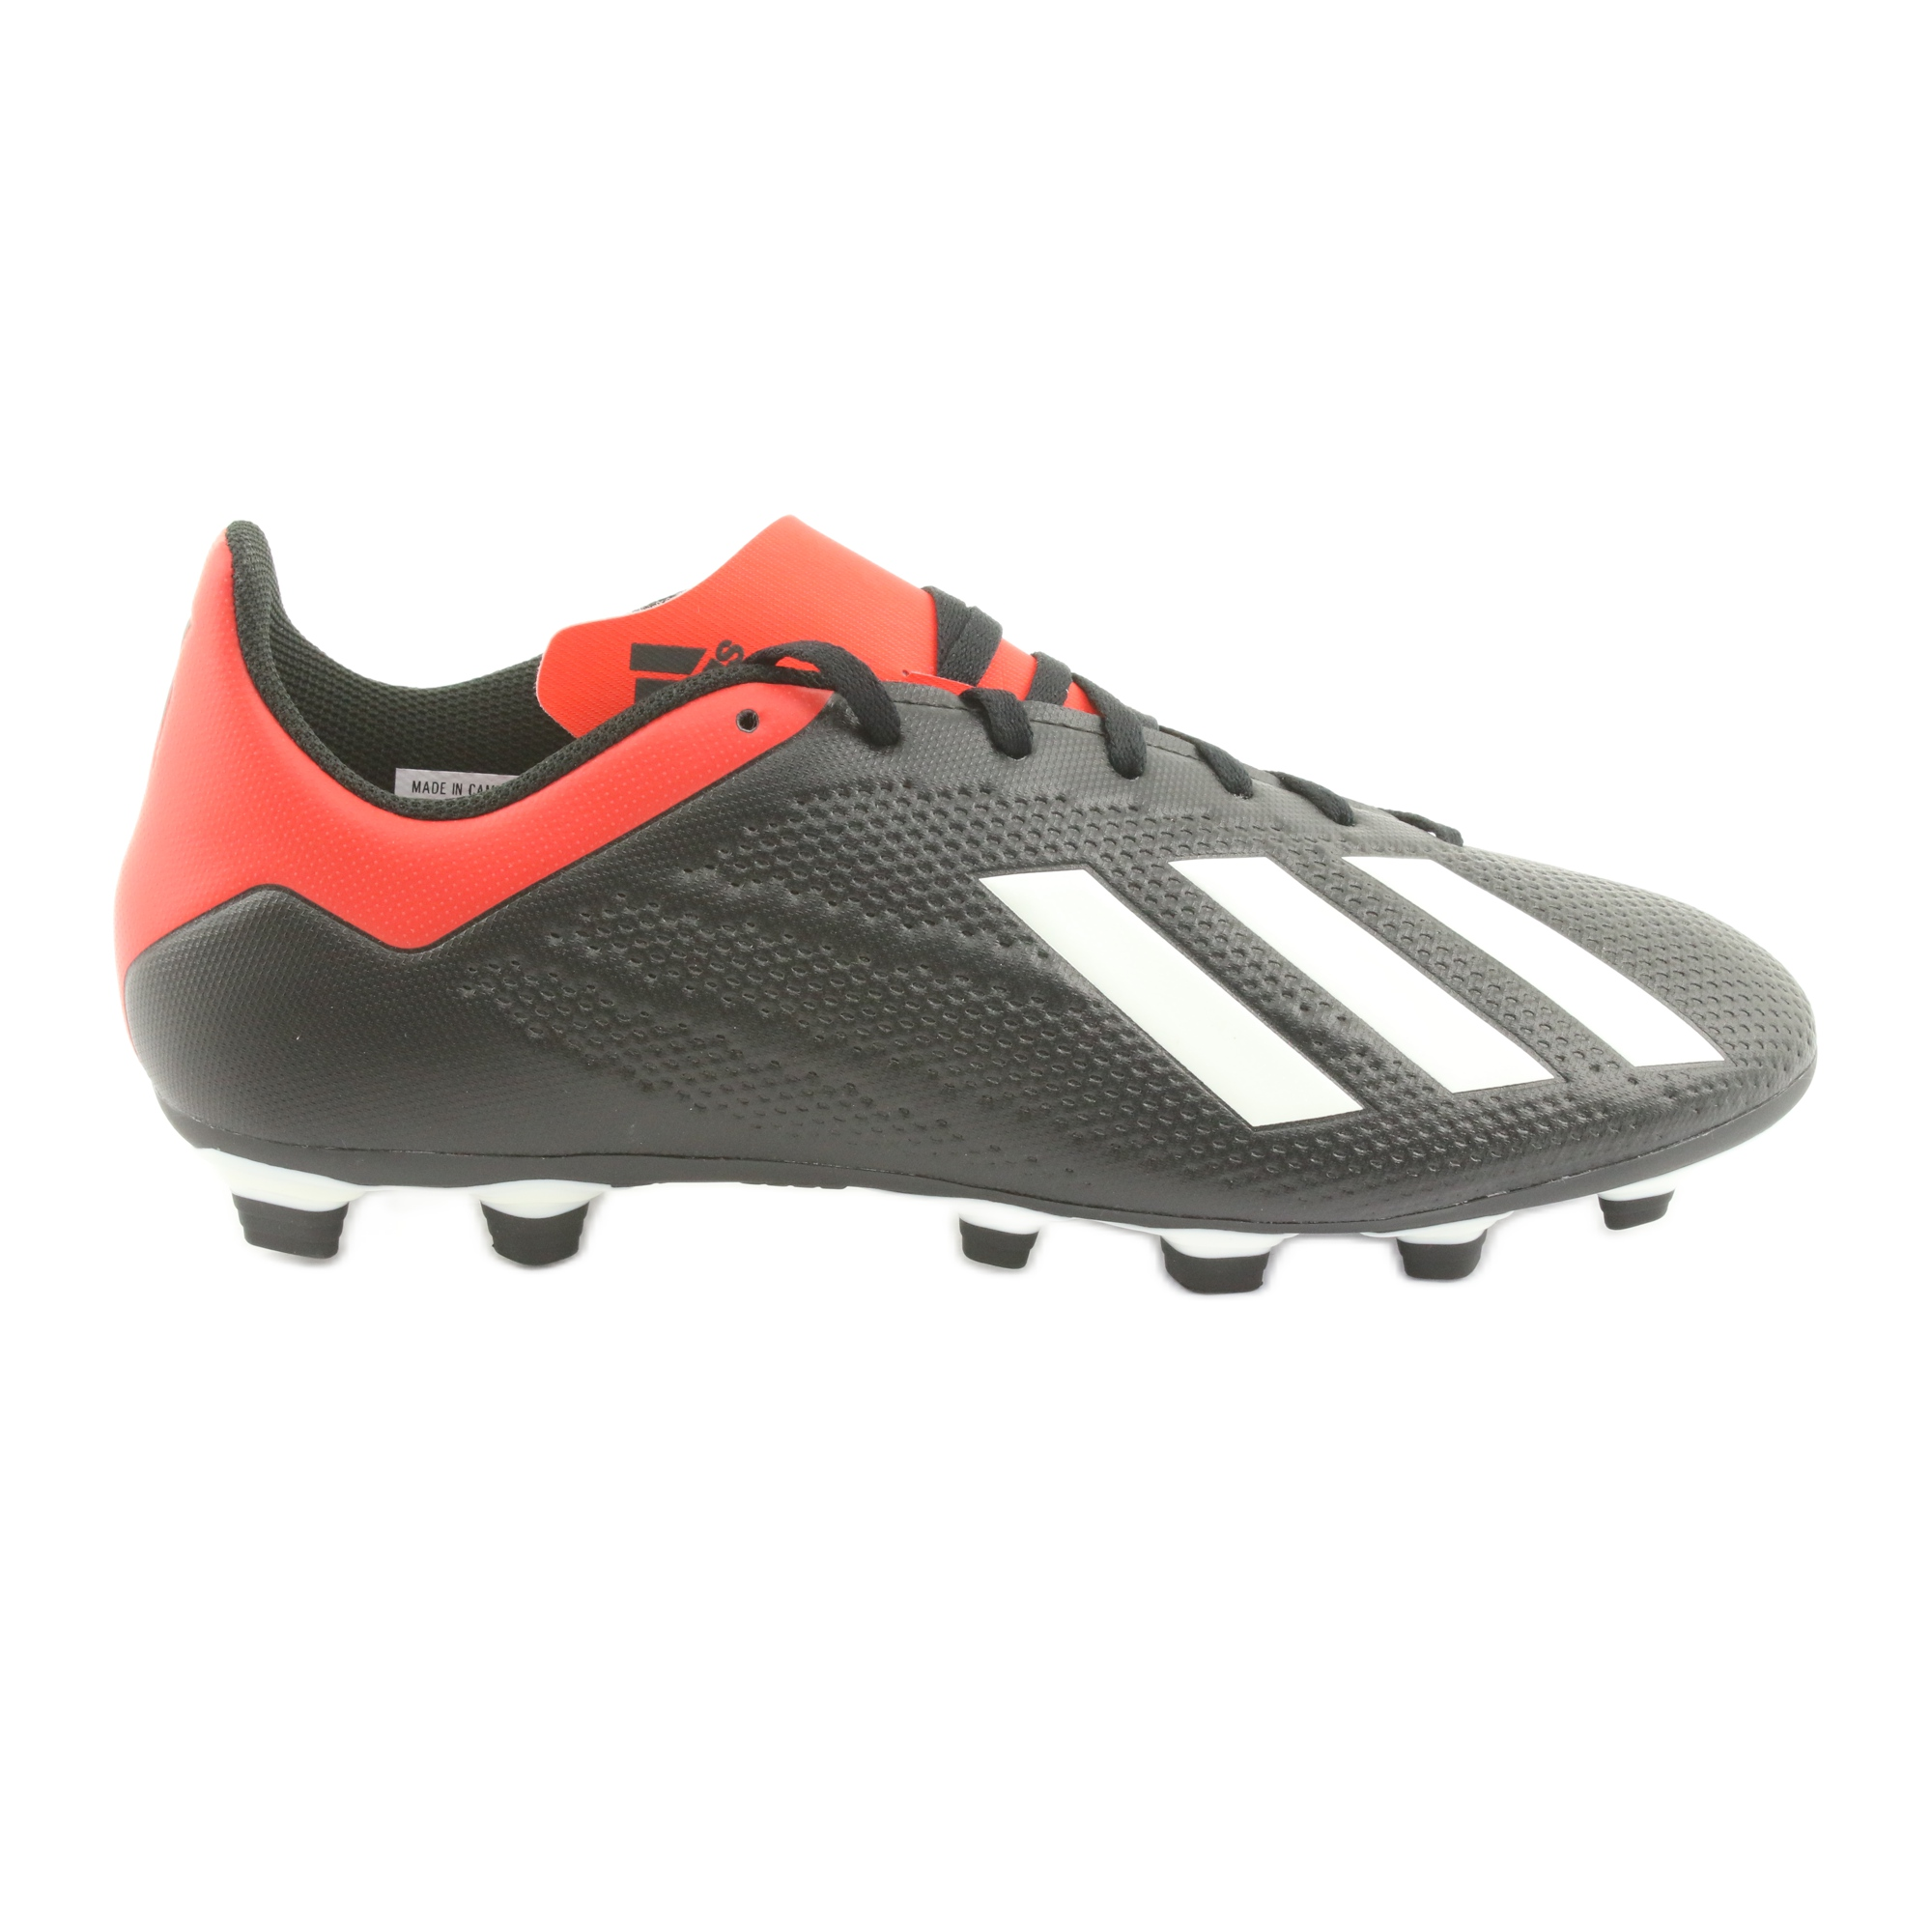 sports shoes a63e3 dc8c4 Football shoes adidas X 18.4 Fg M BB9375